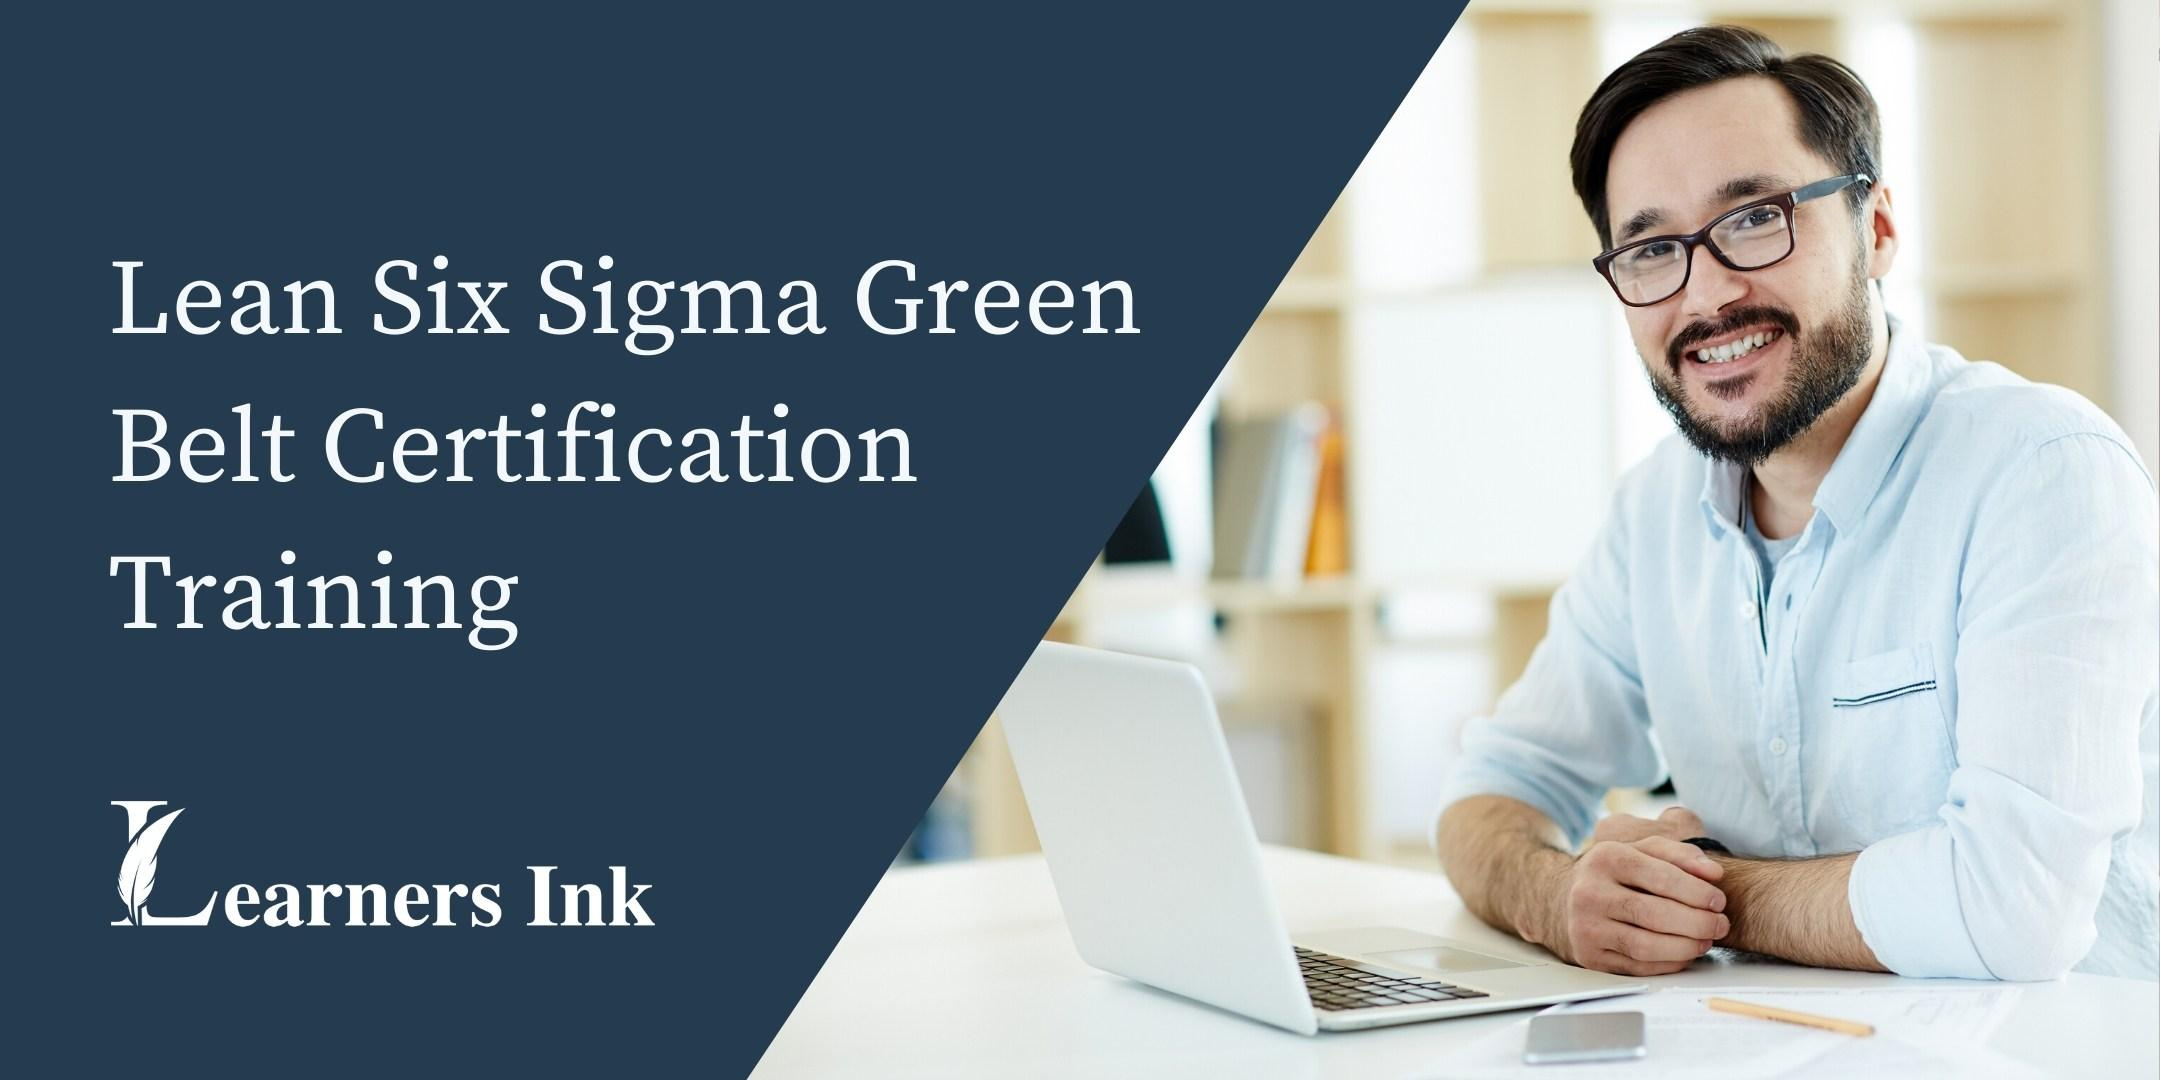 Lean Six Sigma Green Belt Certification Training Course (LSSGB) in Calgary